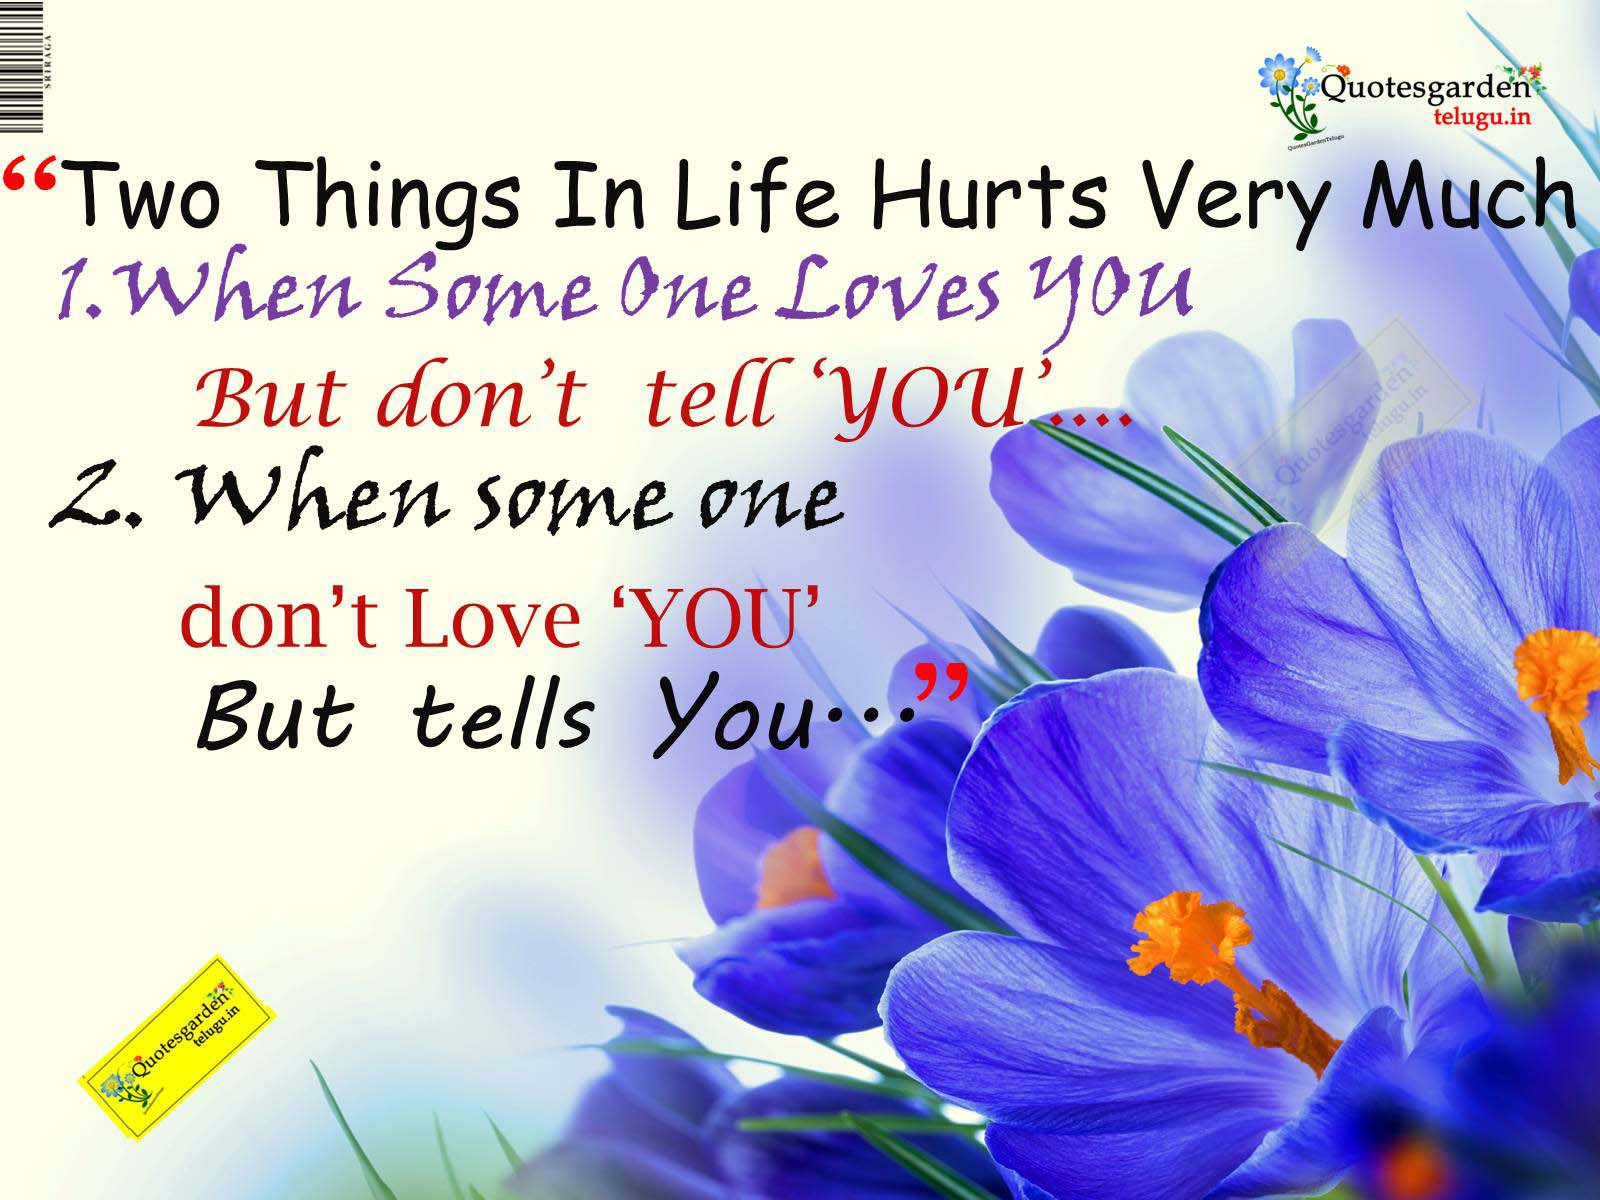 latest heart touching love quotes 632 quotes garden